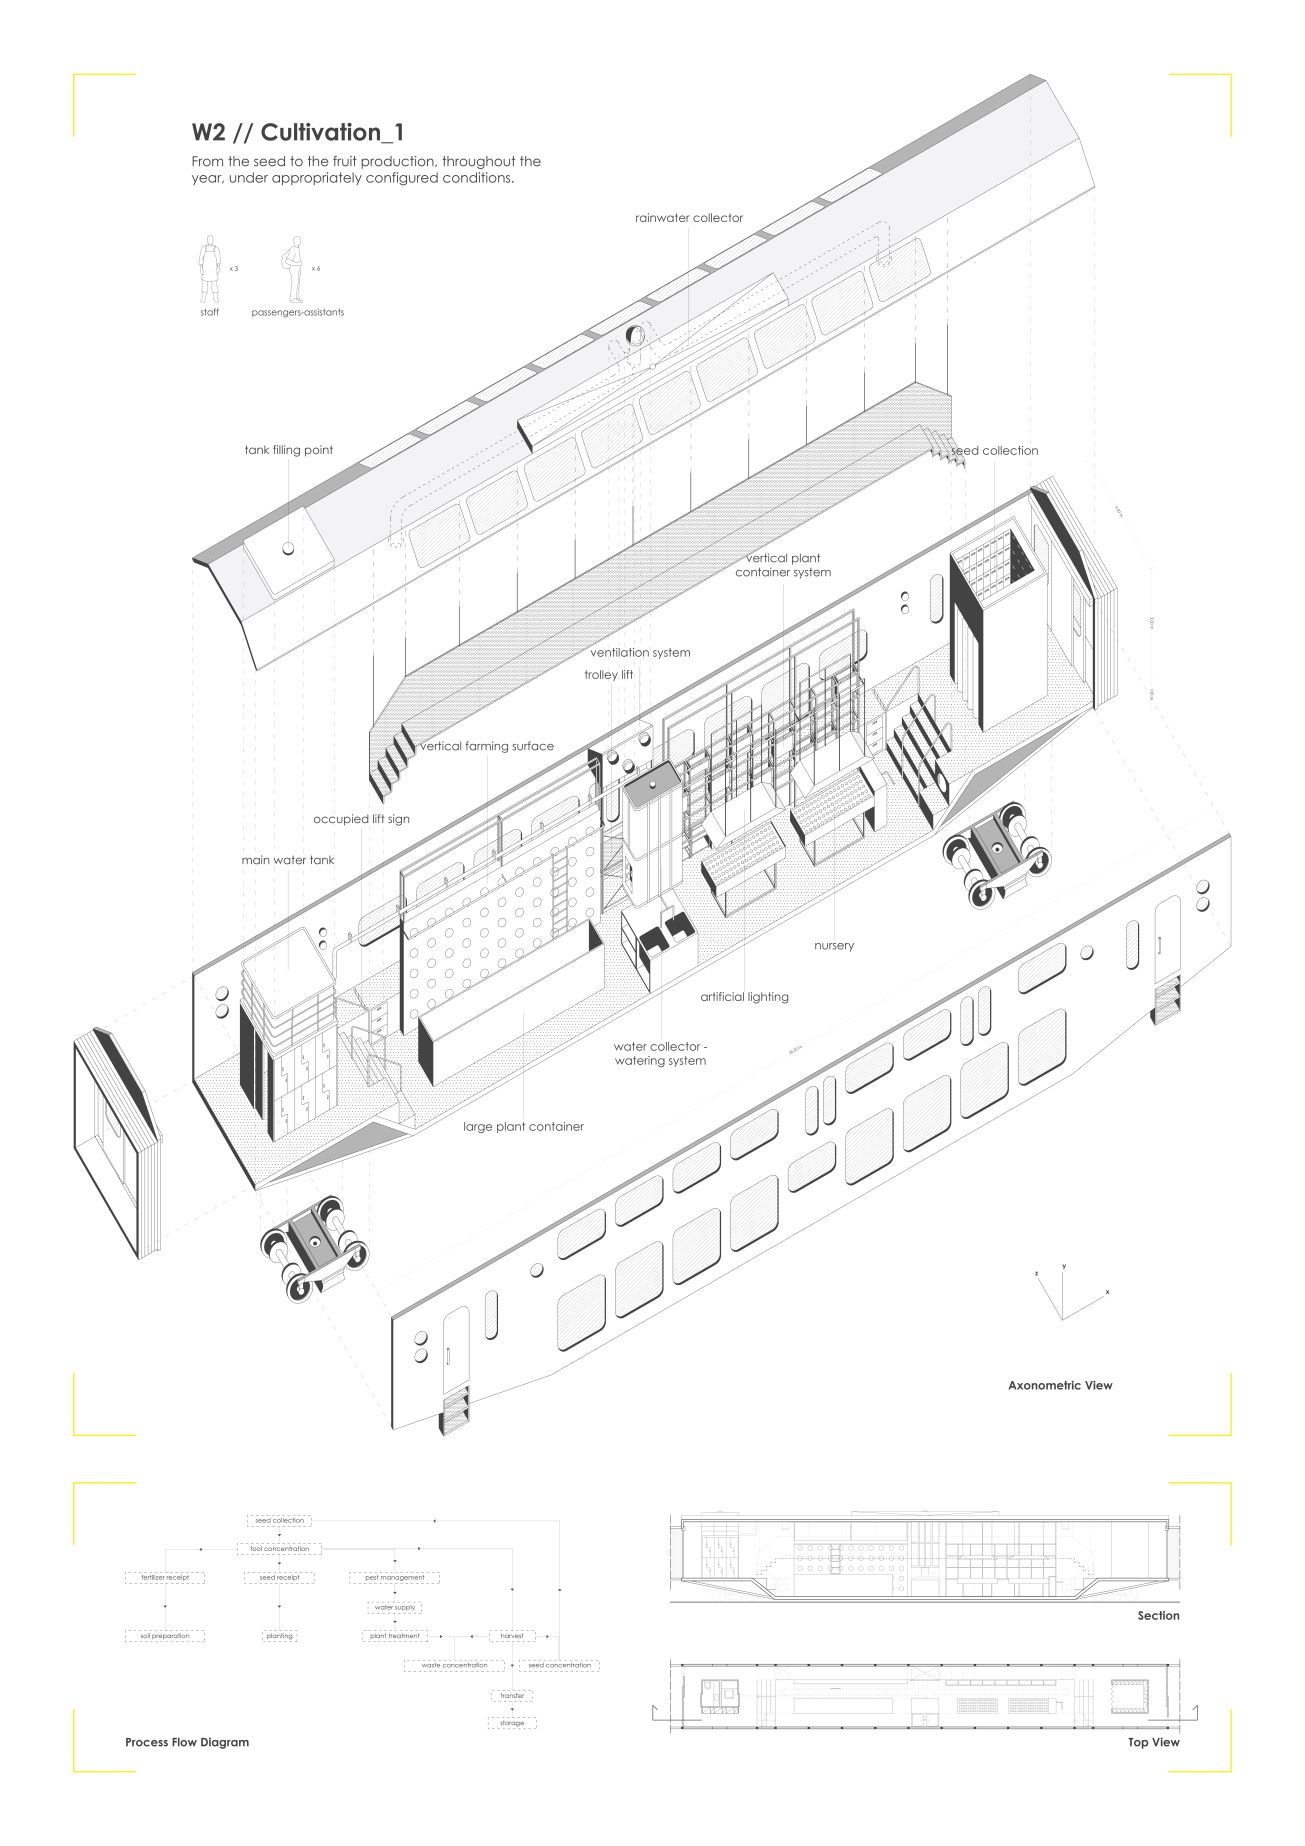 4wagon cultivation architecture graphics pinterest Electronic Circuit Schematic Diagrams 4wagon cultivation architecture plan architecture graphics axonometric drawing presentation layout concept sketches